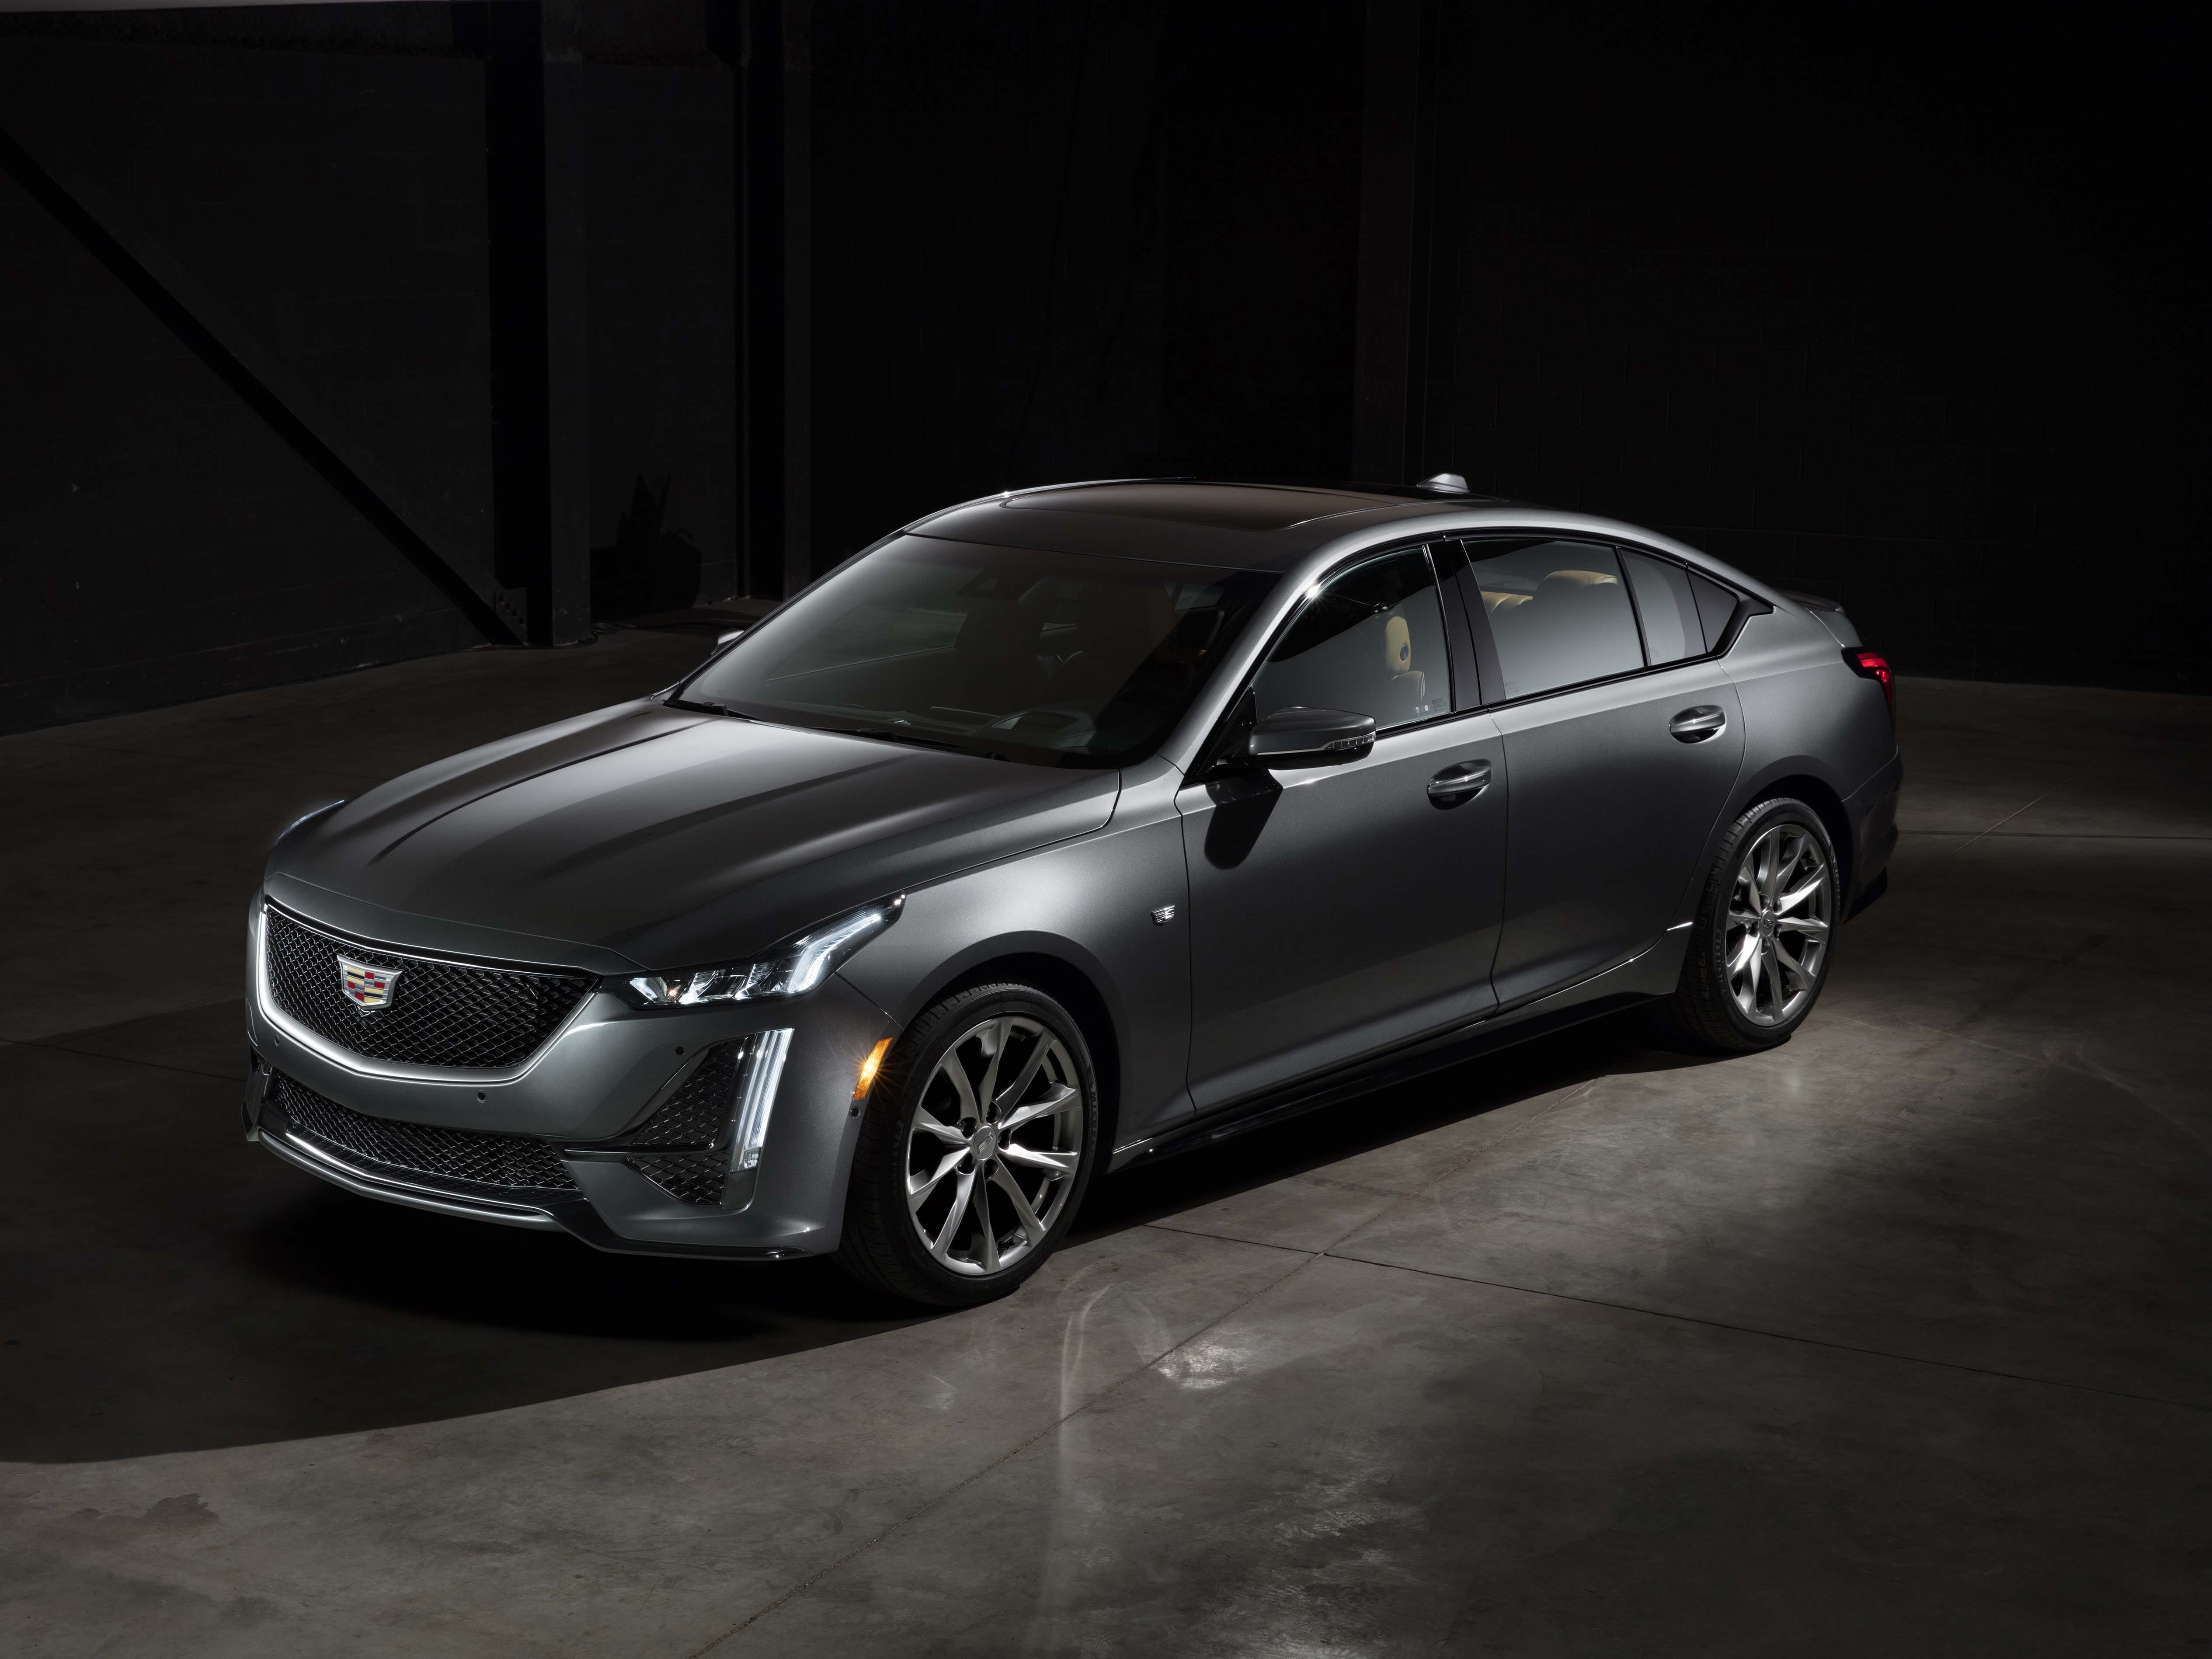 The 2020 Cadillac CT5 will come with tow engine options - a 2.0-liter turbo-4 or a 3.0-liter turbo-6. The car is available in Sport of Premium trims.